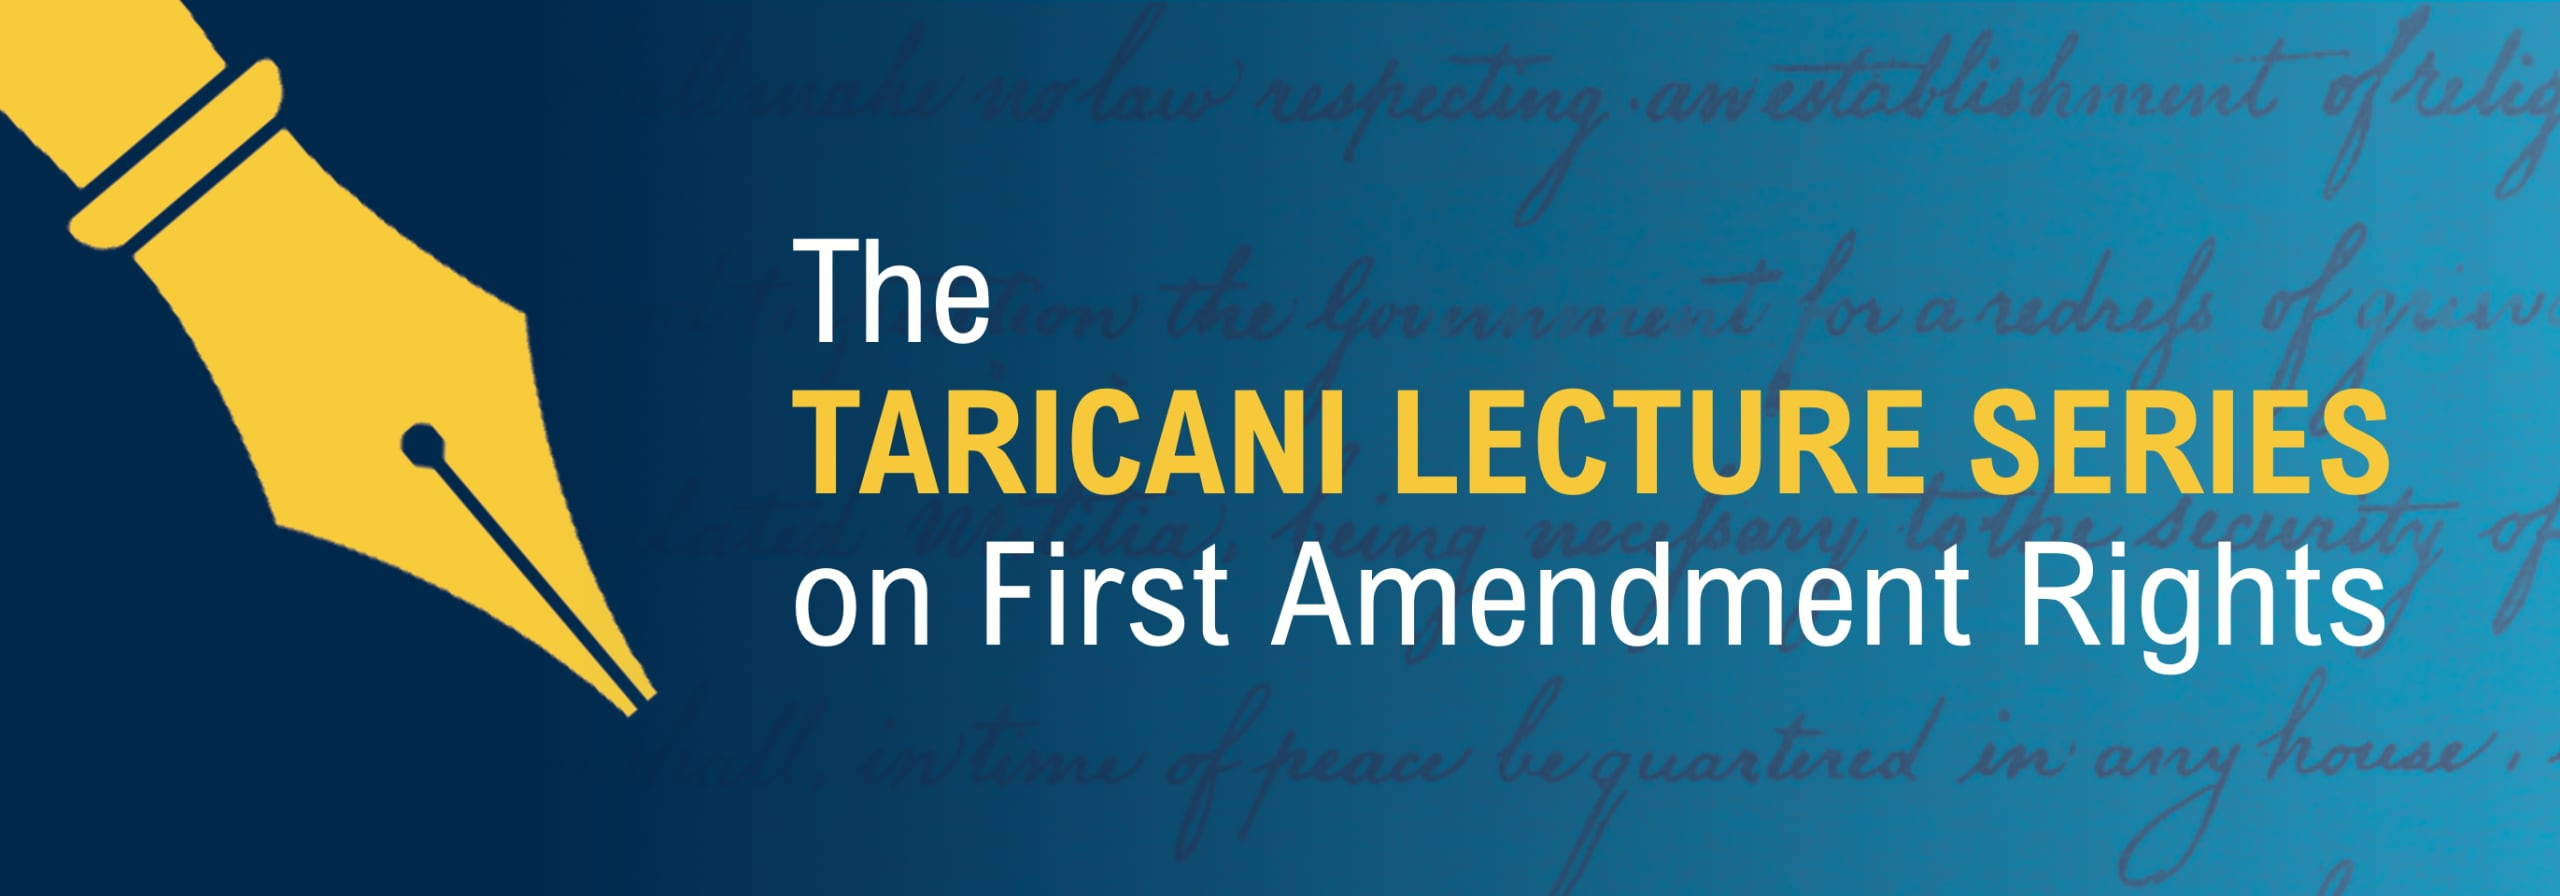 The Taricani Lecture Series on First Amendment Rights